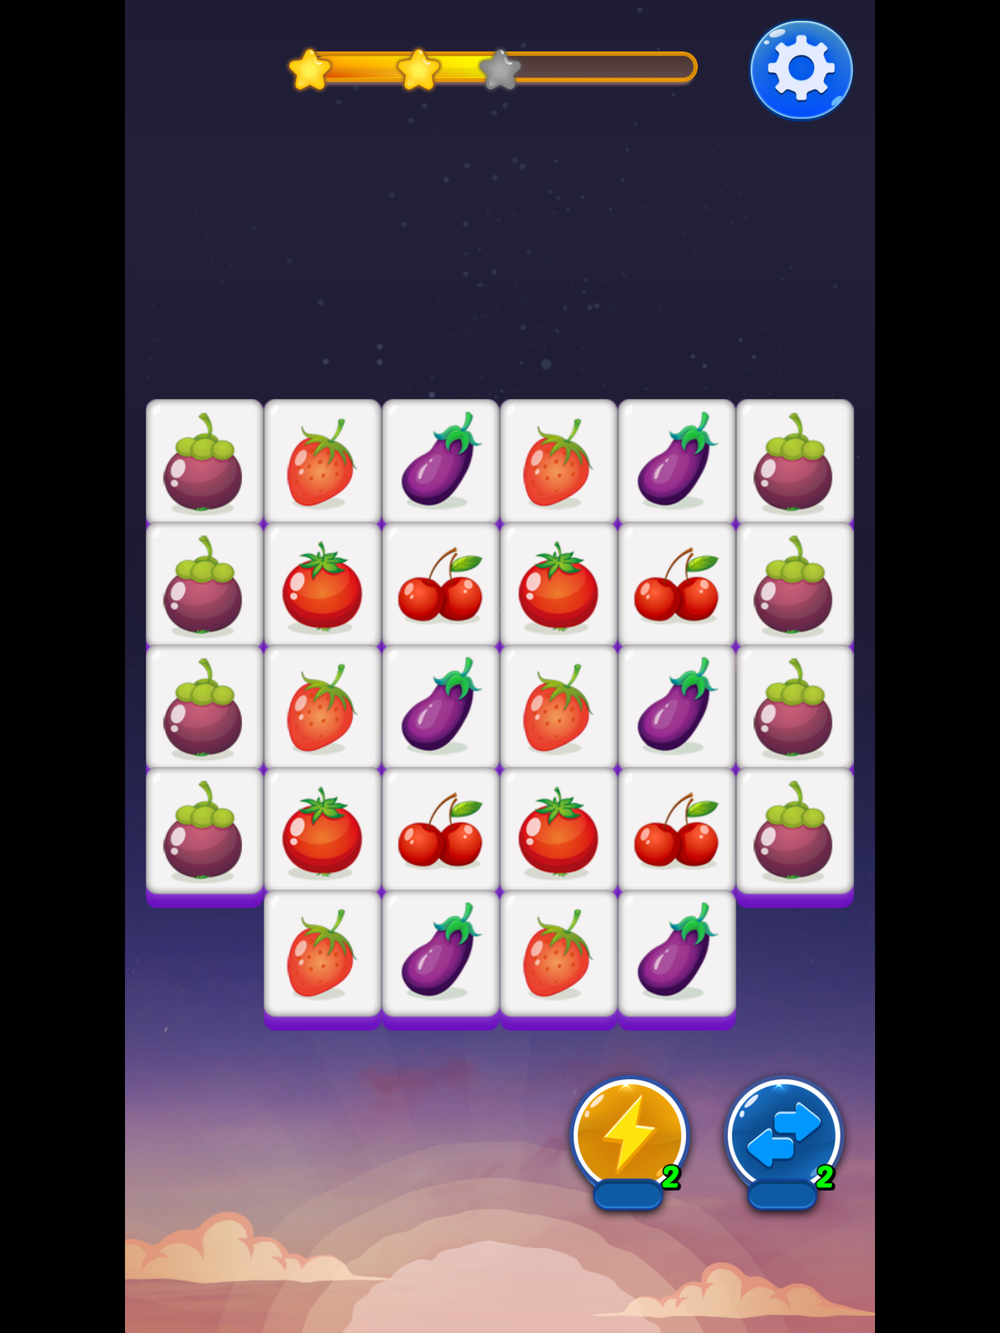 fruit matching by kou qing yun, recommended app for people living with dementia